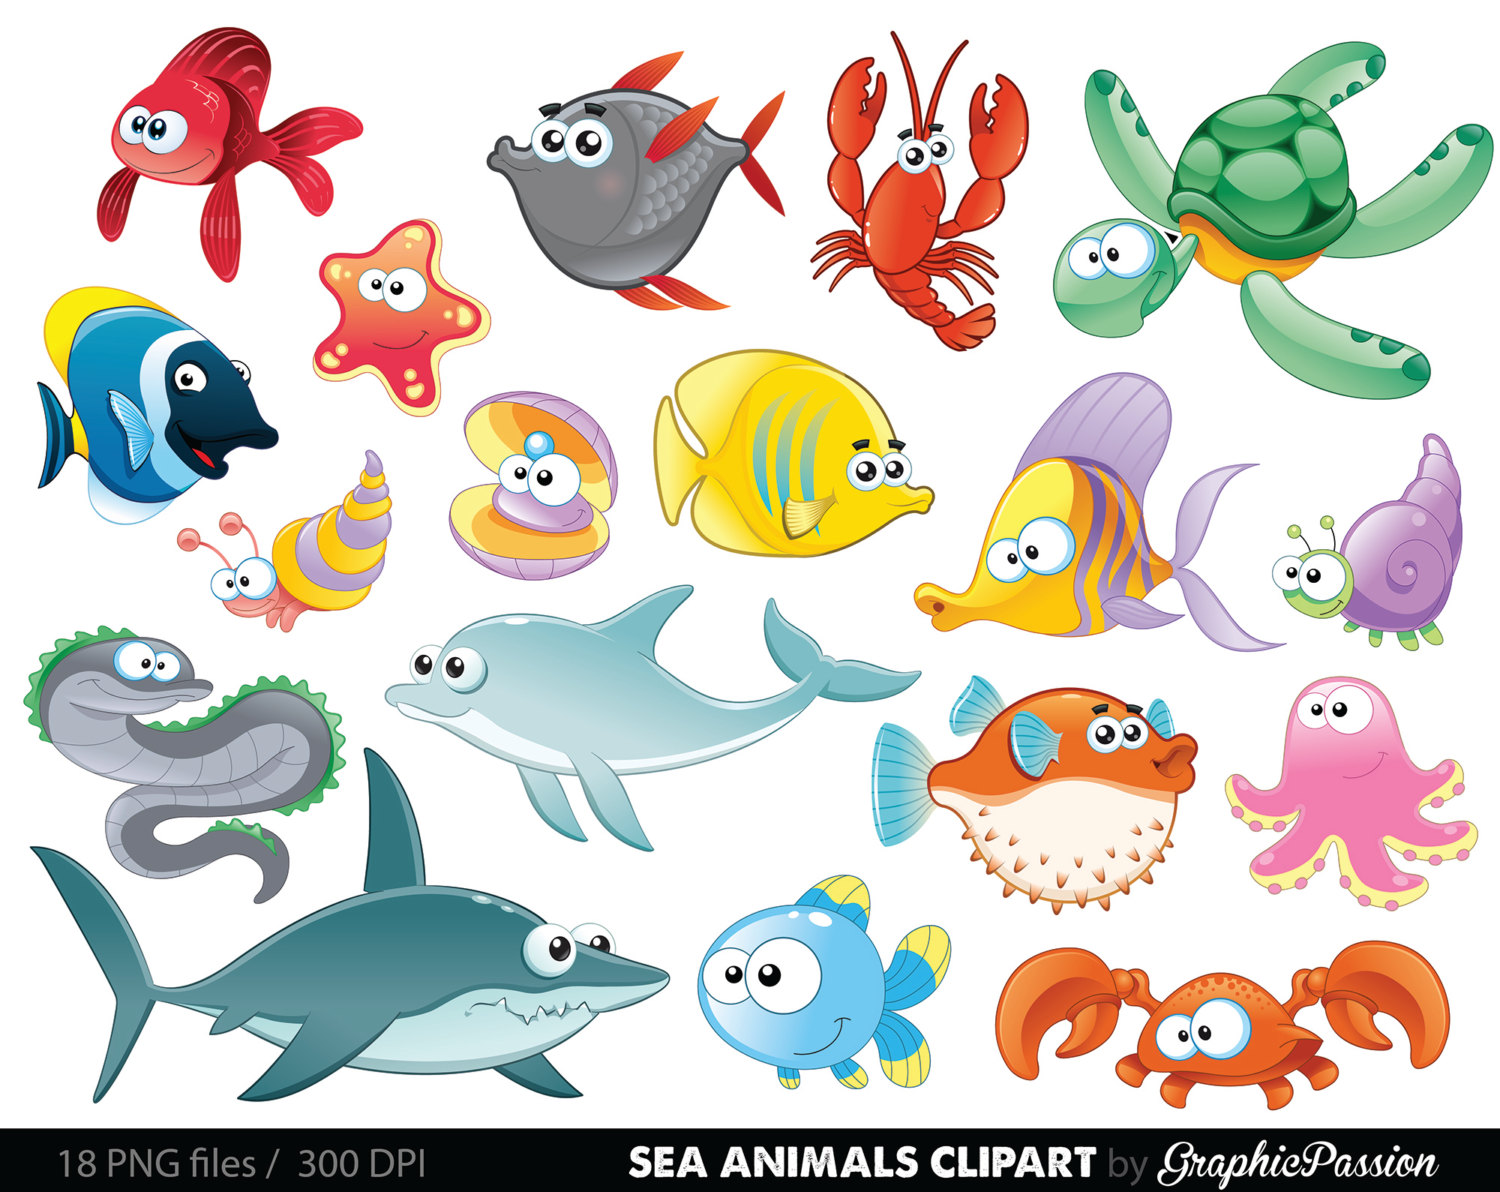 Sea Animal Clipart Under The Sea Baby Se-Sea Animal Clipart Under the Sea Baby Sea Creatures Clip Art Animal Clipart Ocean clipart Sea creatures graphics Sea animals vector-13